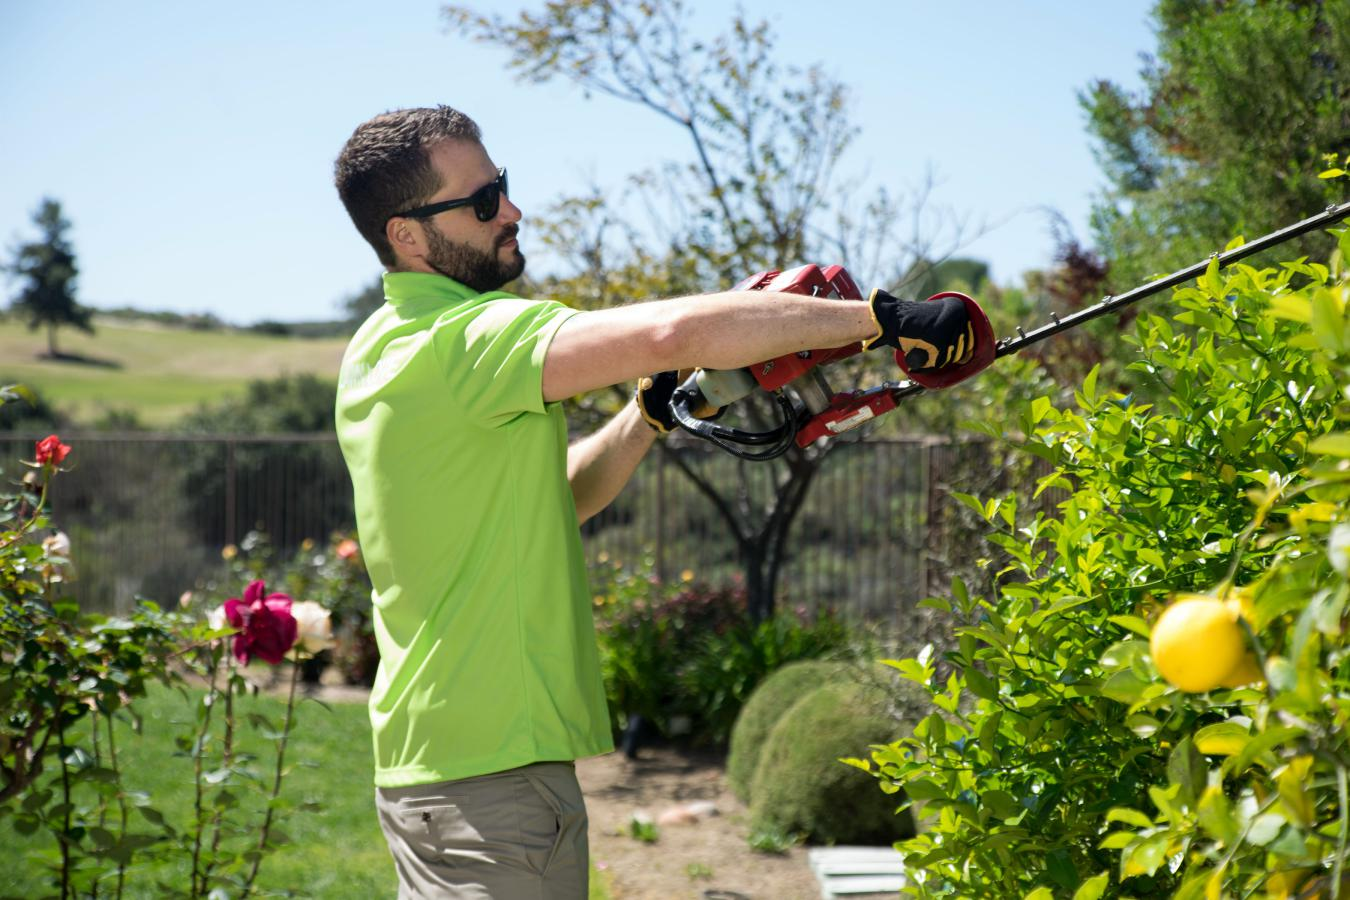 Improved life of lawn pros through smartly leveraged technology